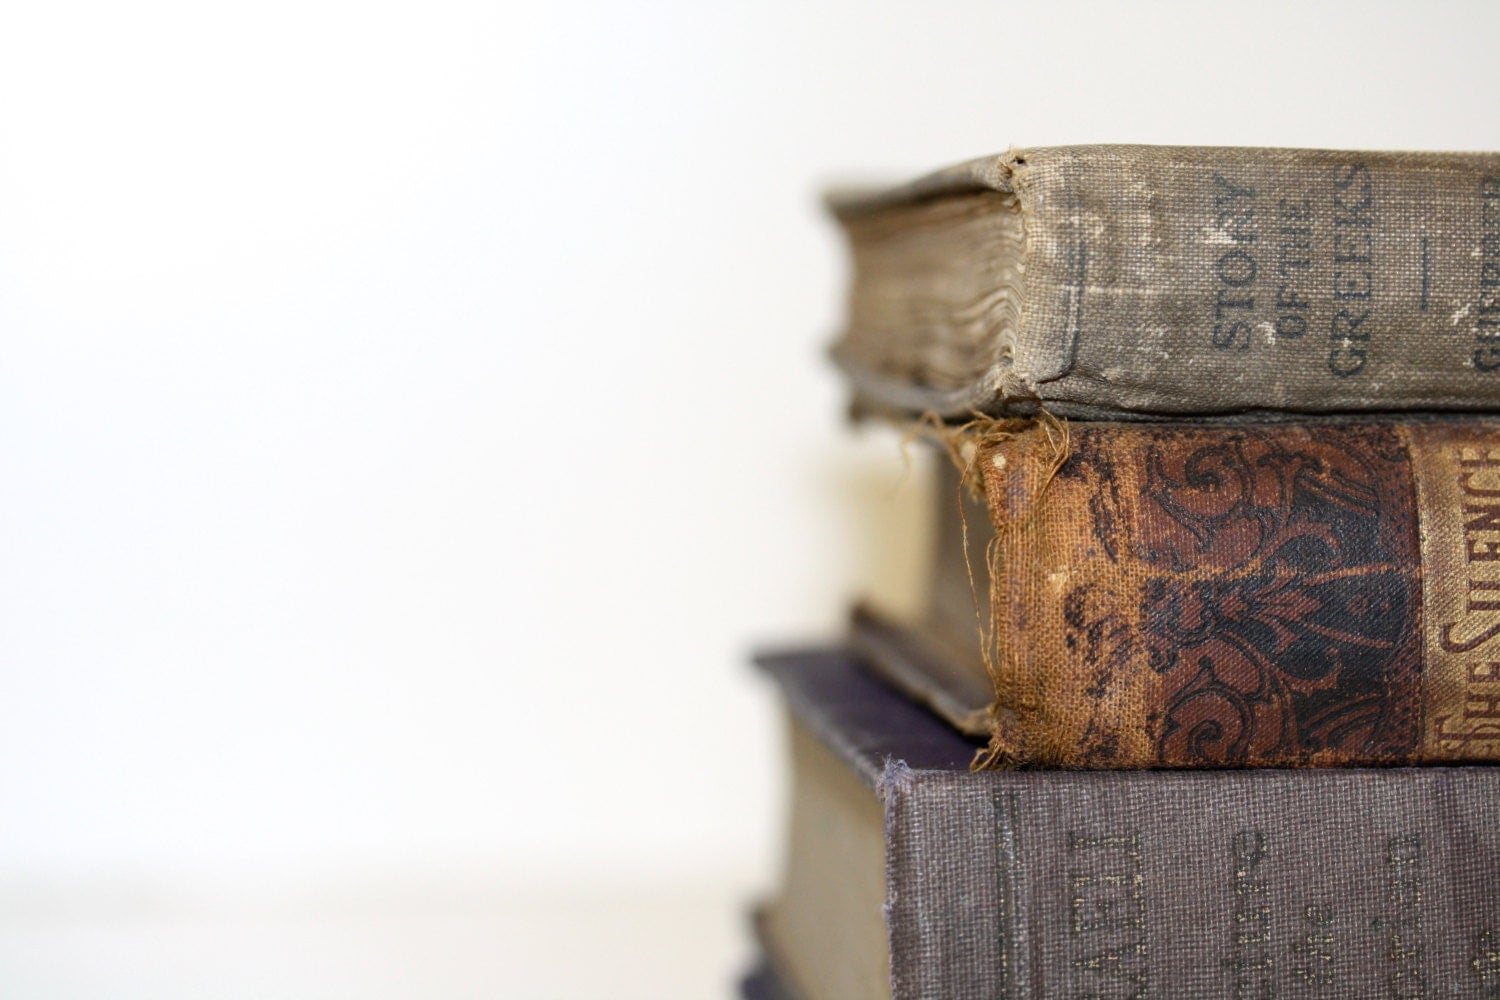 Shabby Chic Book Collection Faded Lilac Brown Tones Wedding Photography Prop  TREASURY ITEM - jaysworld